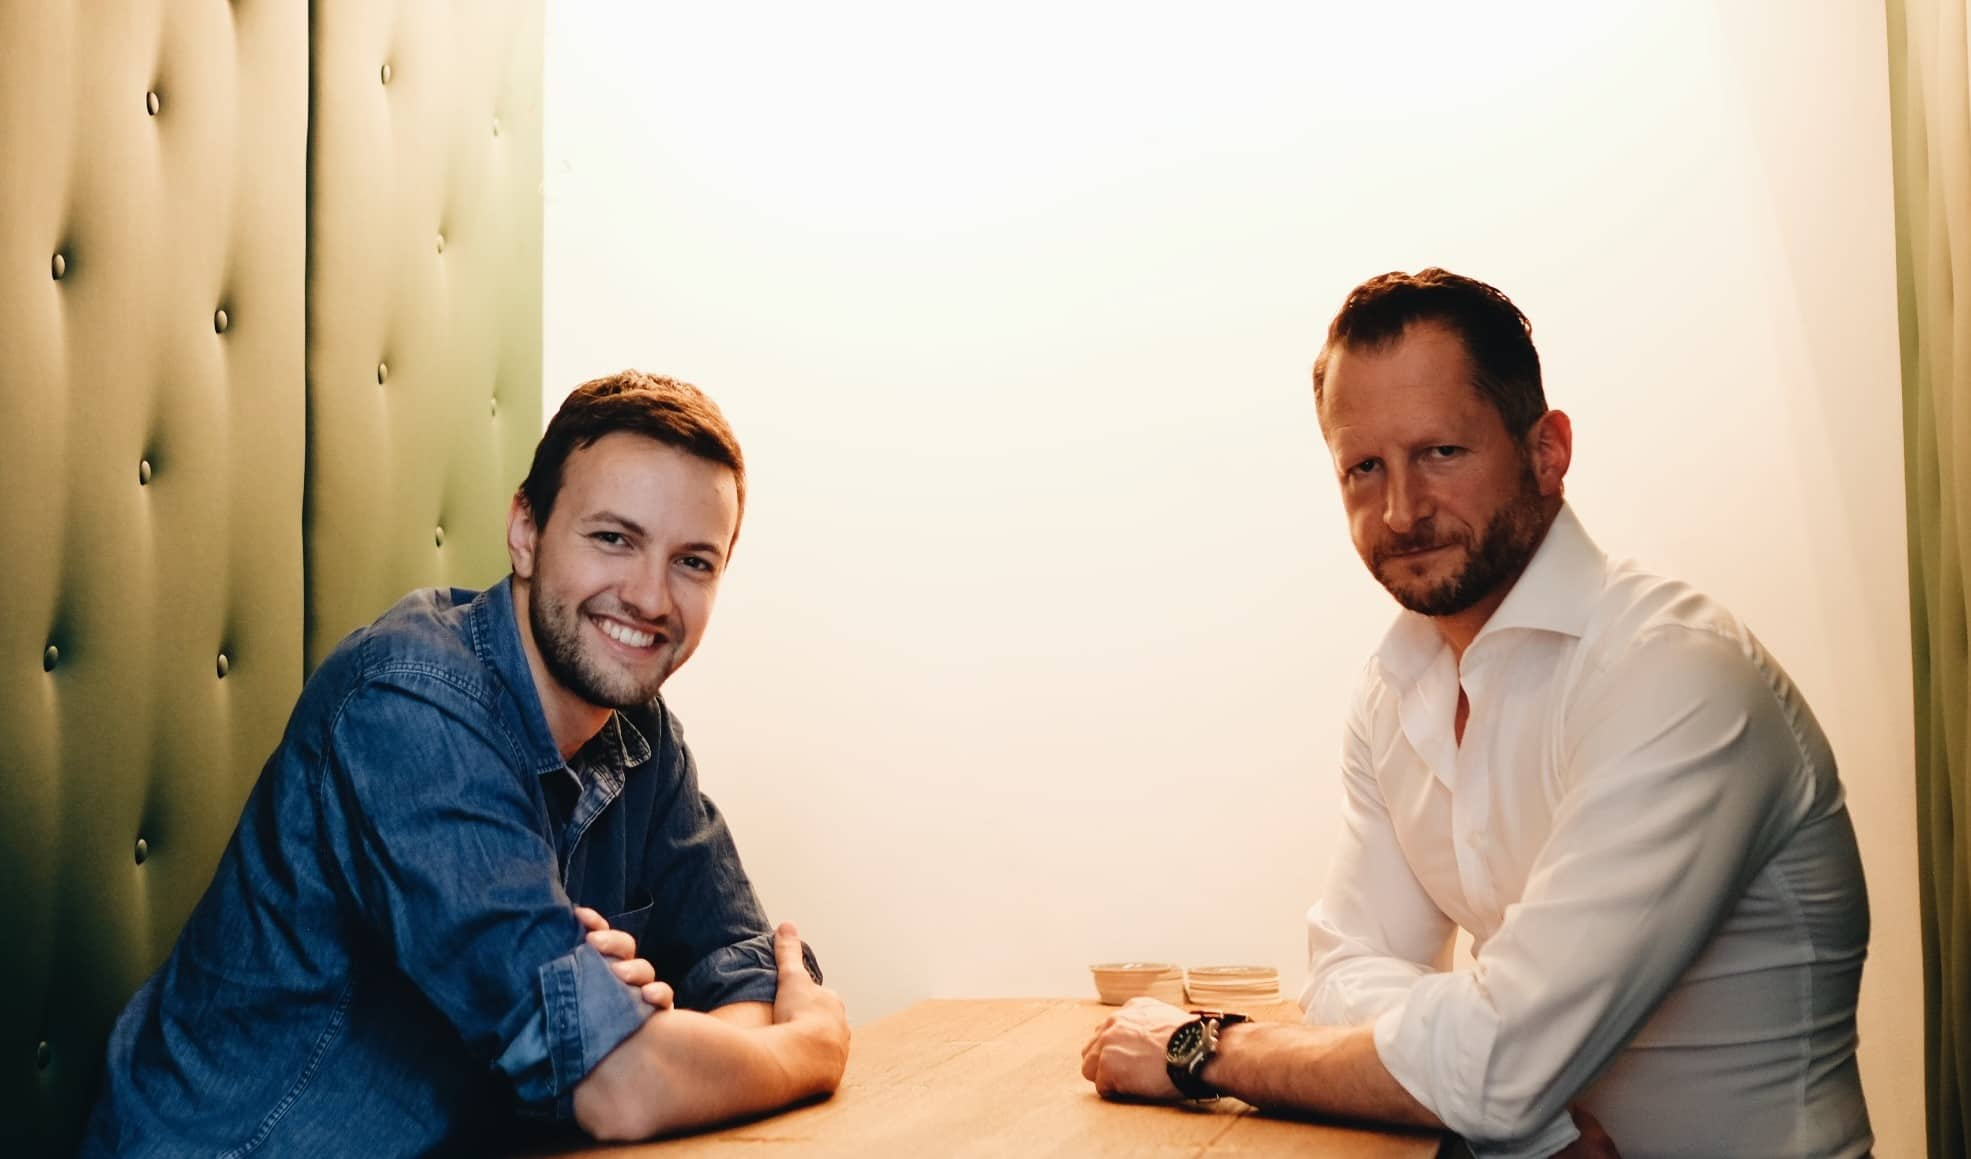 Omnipresent secures £11 million Series A investment from Episode 1, Playfair Capital and Truesight Ventures